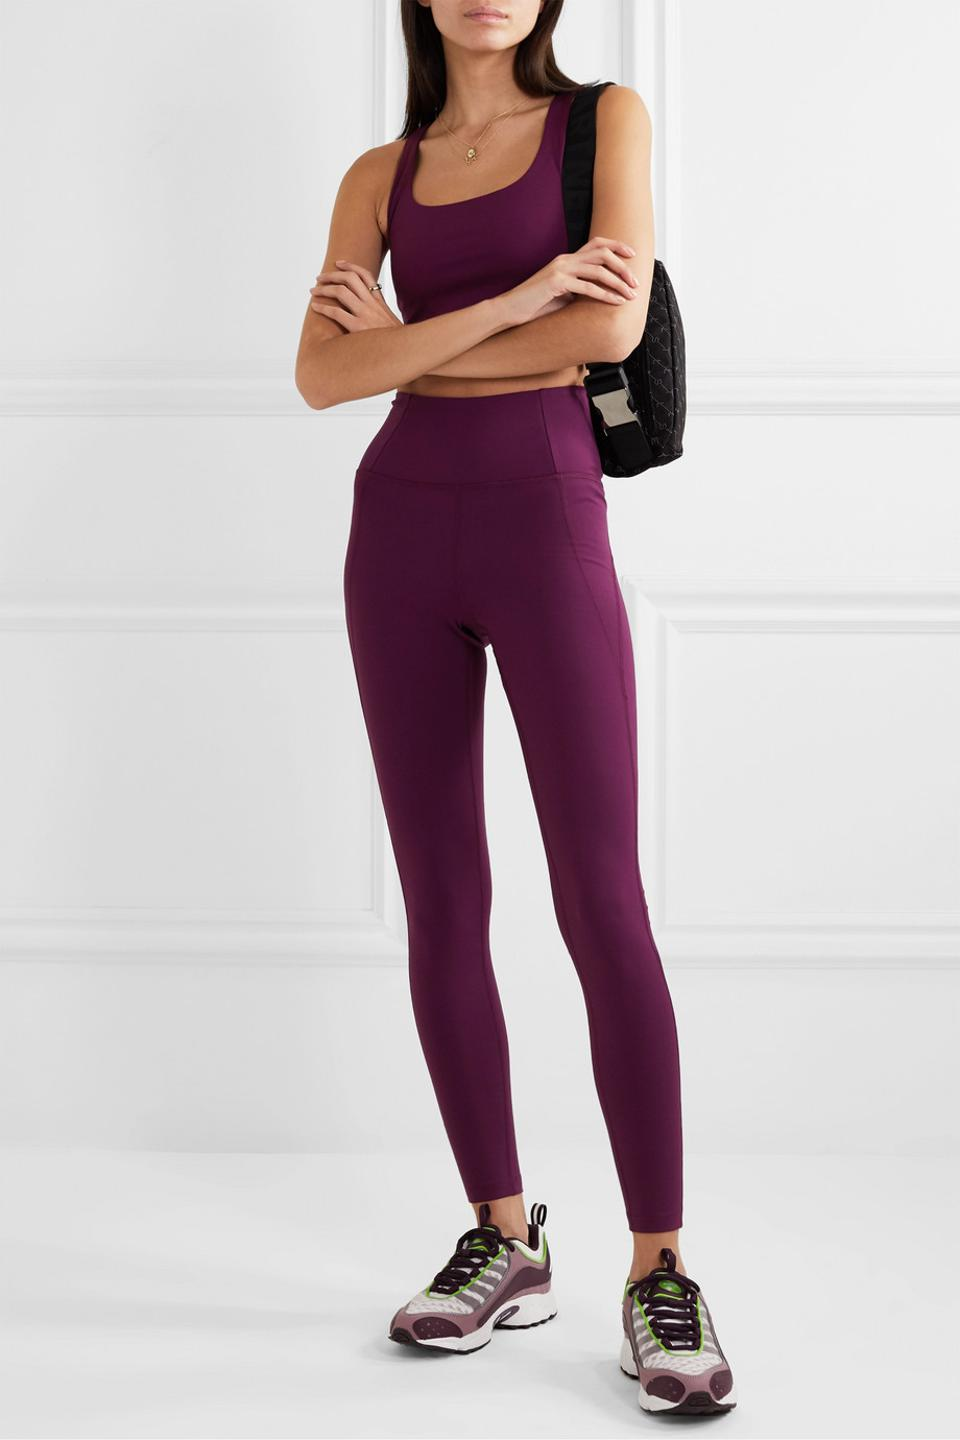 Compressive stretch leggings by Girlfriend Collective